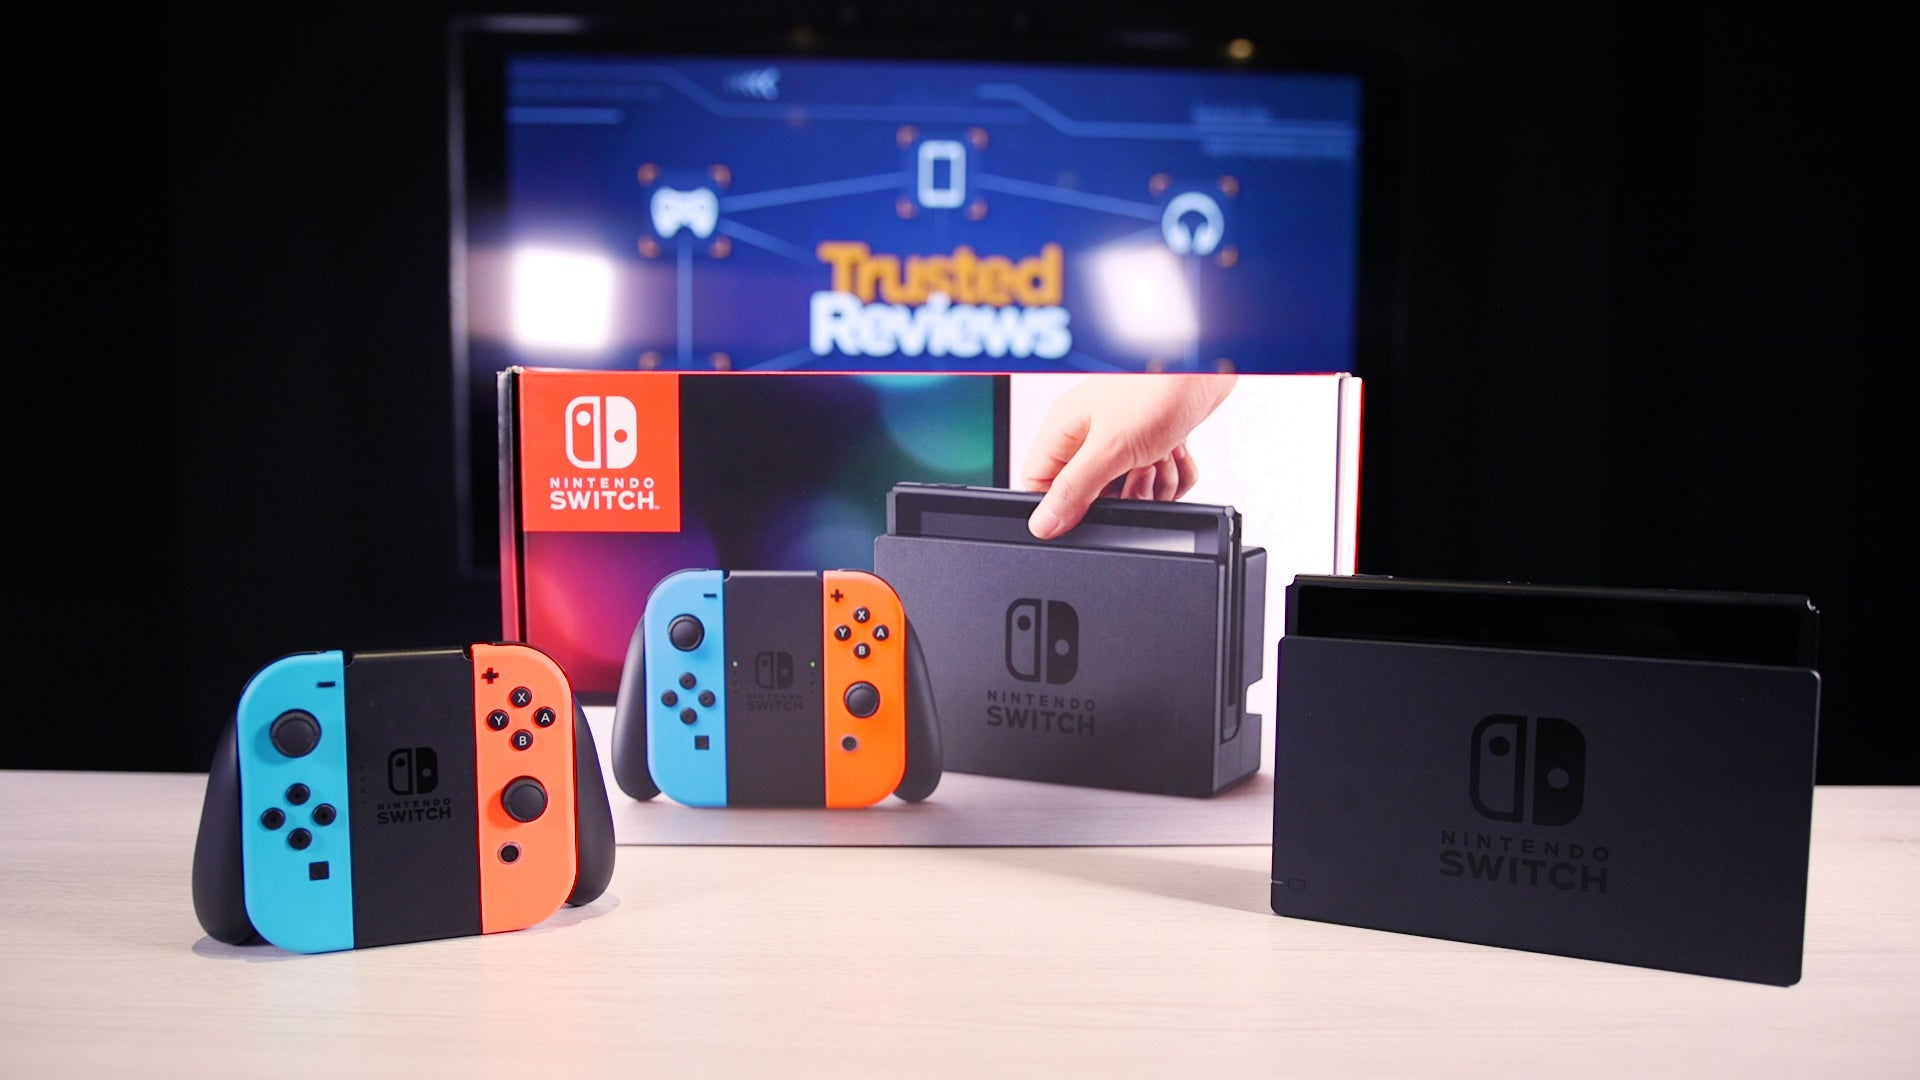 Nintendo Switch Review The Most Exciting Game Console Trusted Reviews